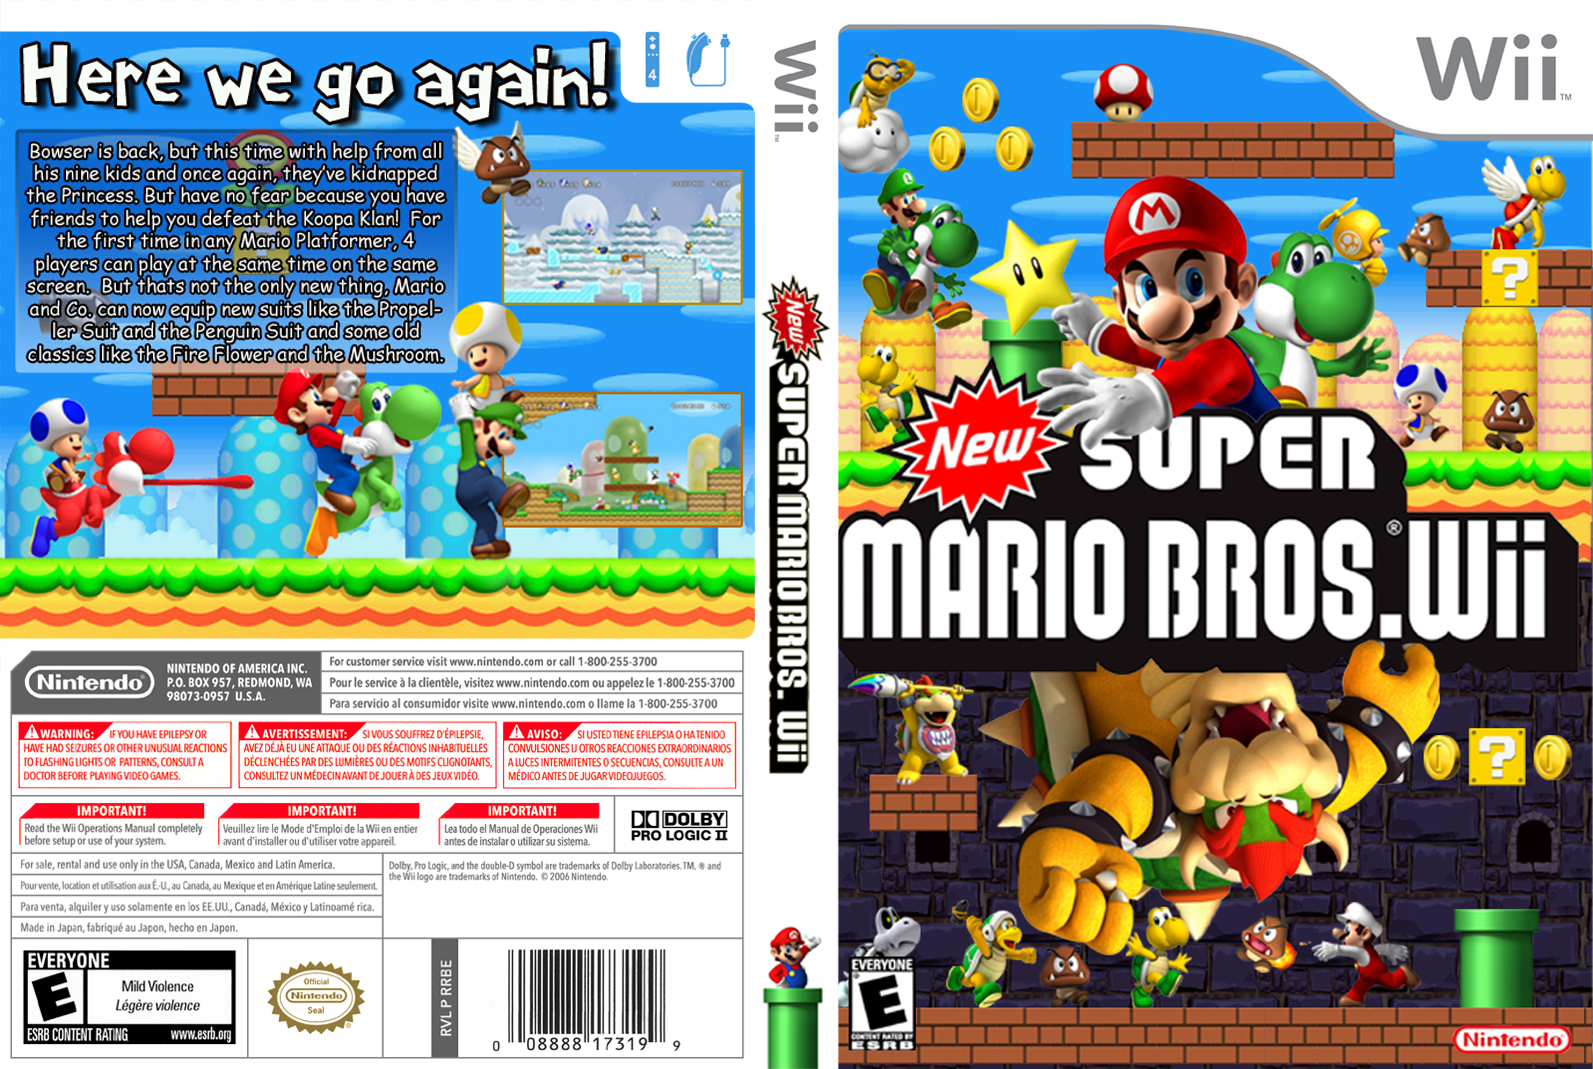 New super mario bros wii download for dolphin